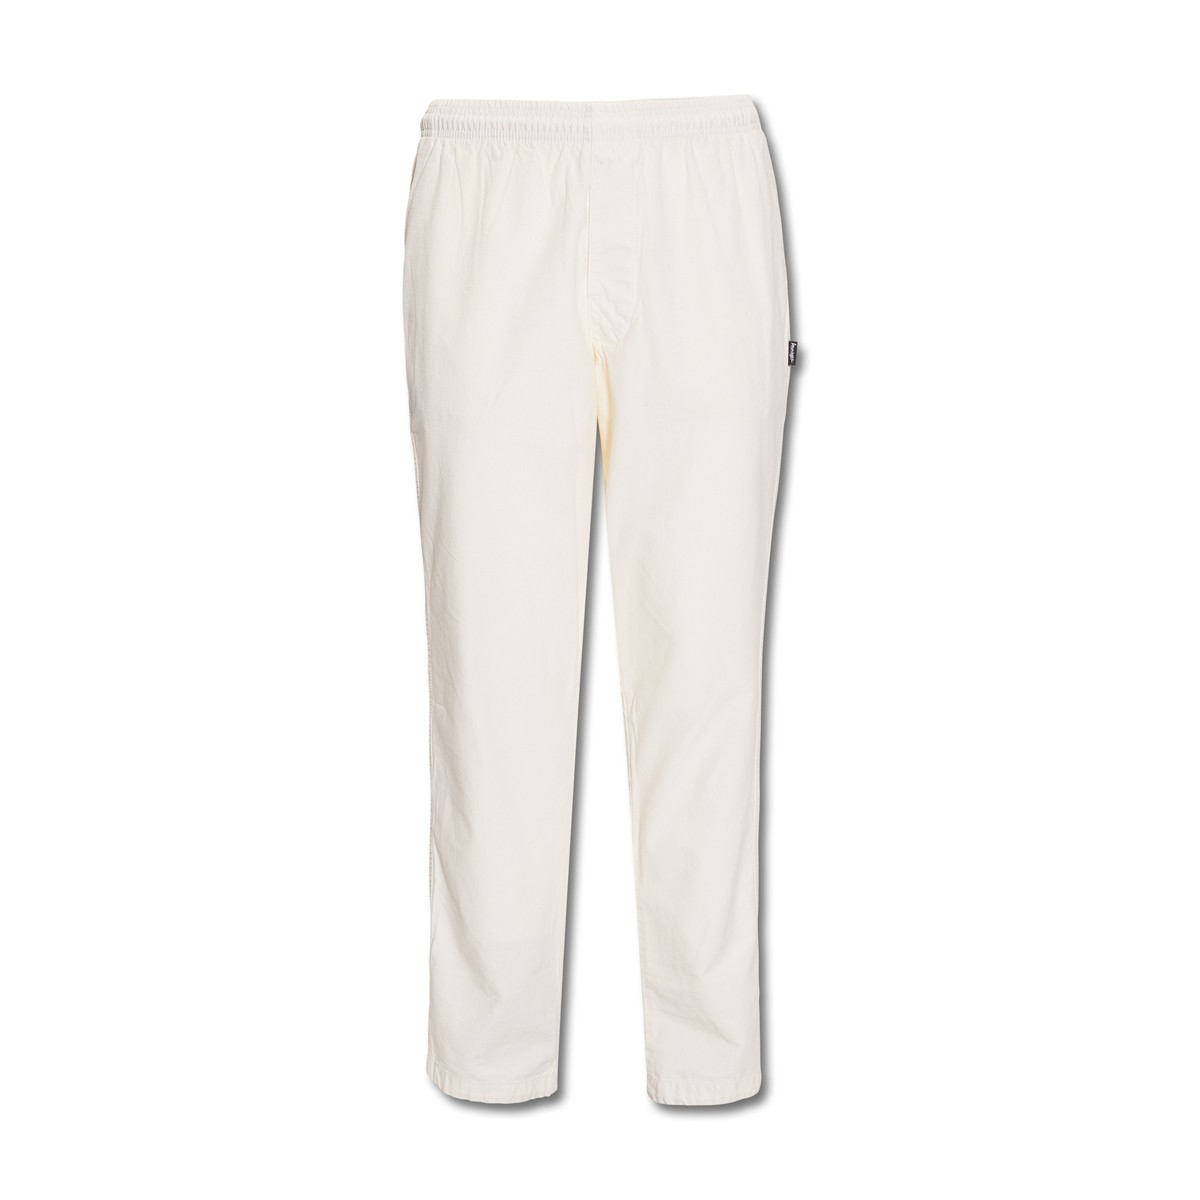 cc4ce43aef Stussy Overdyed Ripstop Beach Pant in White for Men - Lyst